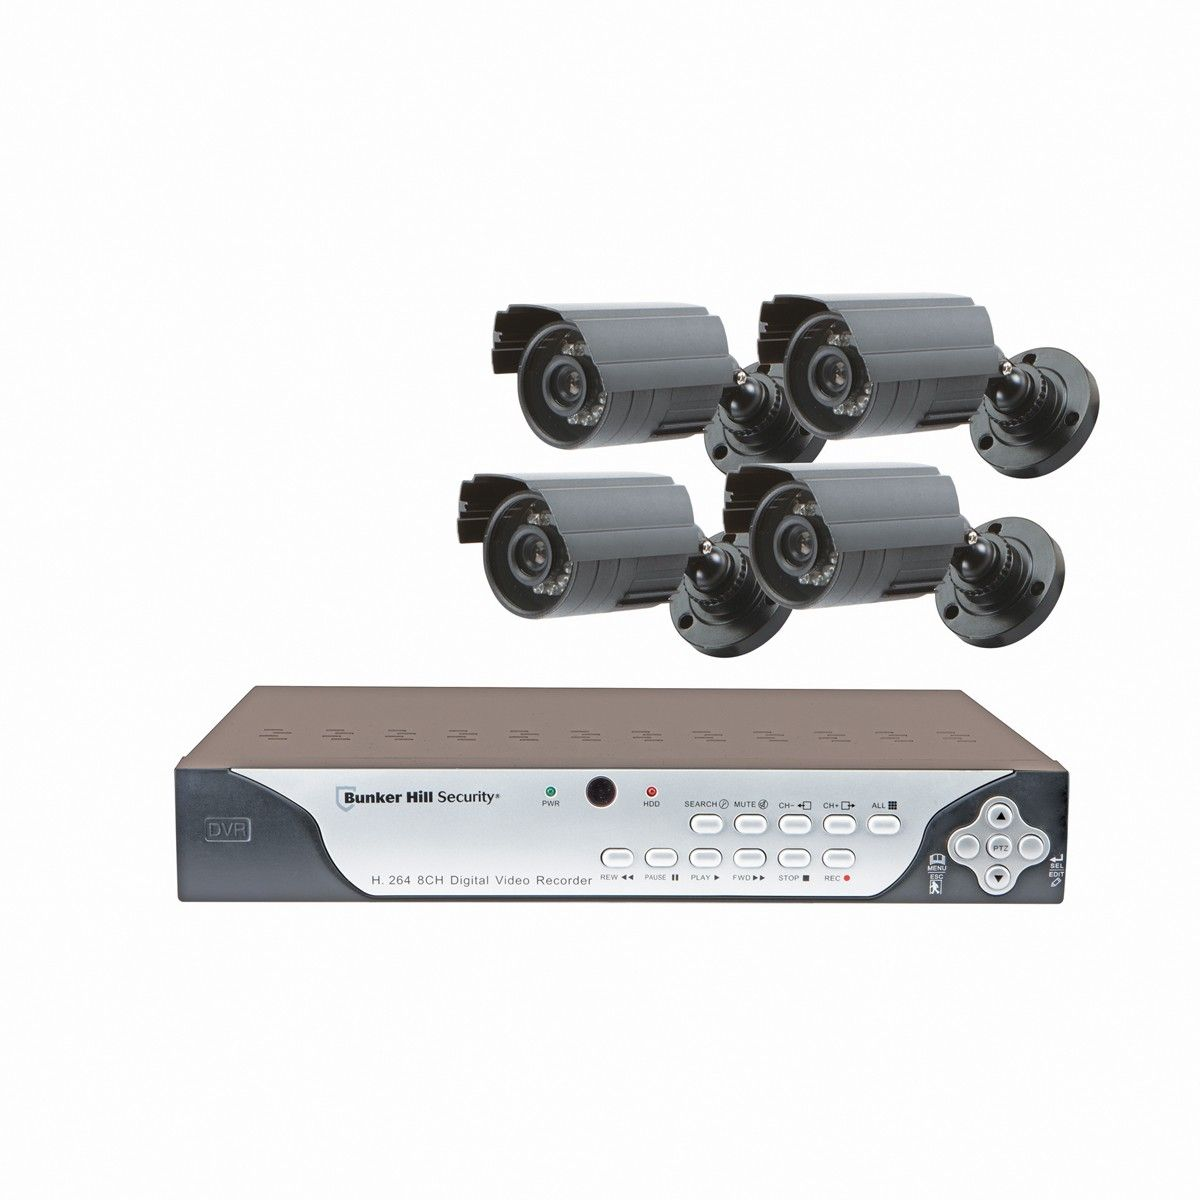 Bunker Hill Security 61229 8 Channel Surveillance Dvr With 4 Cameras And Mobile Monitoring Capabilities Surveillance Camera Installation